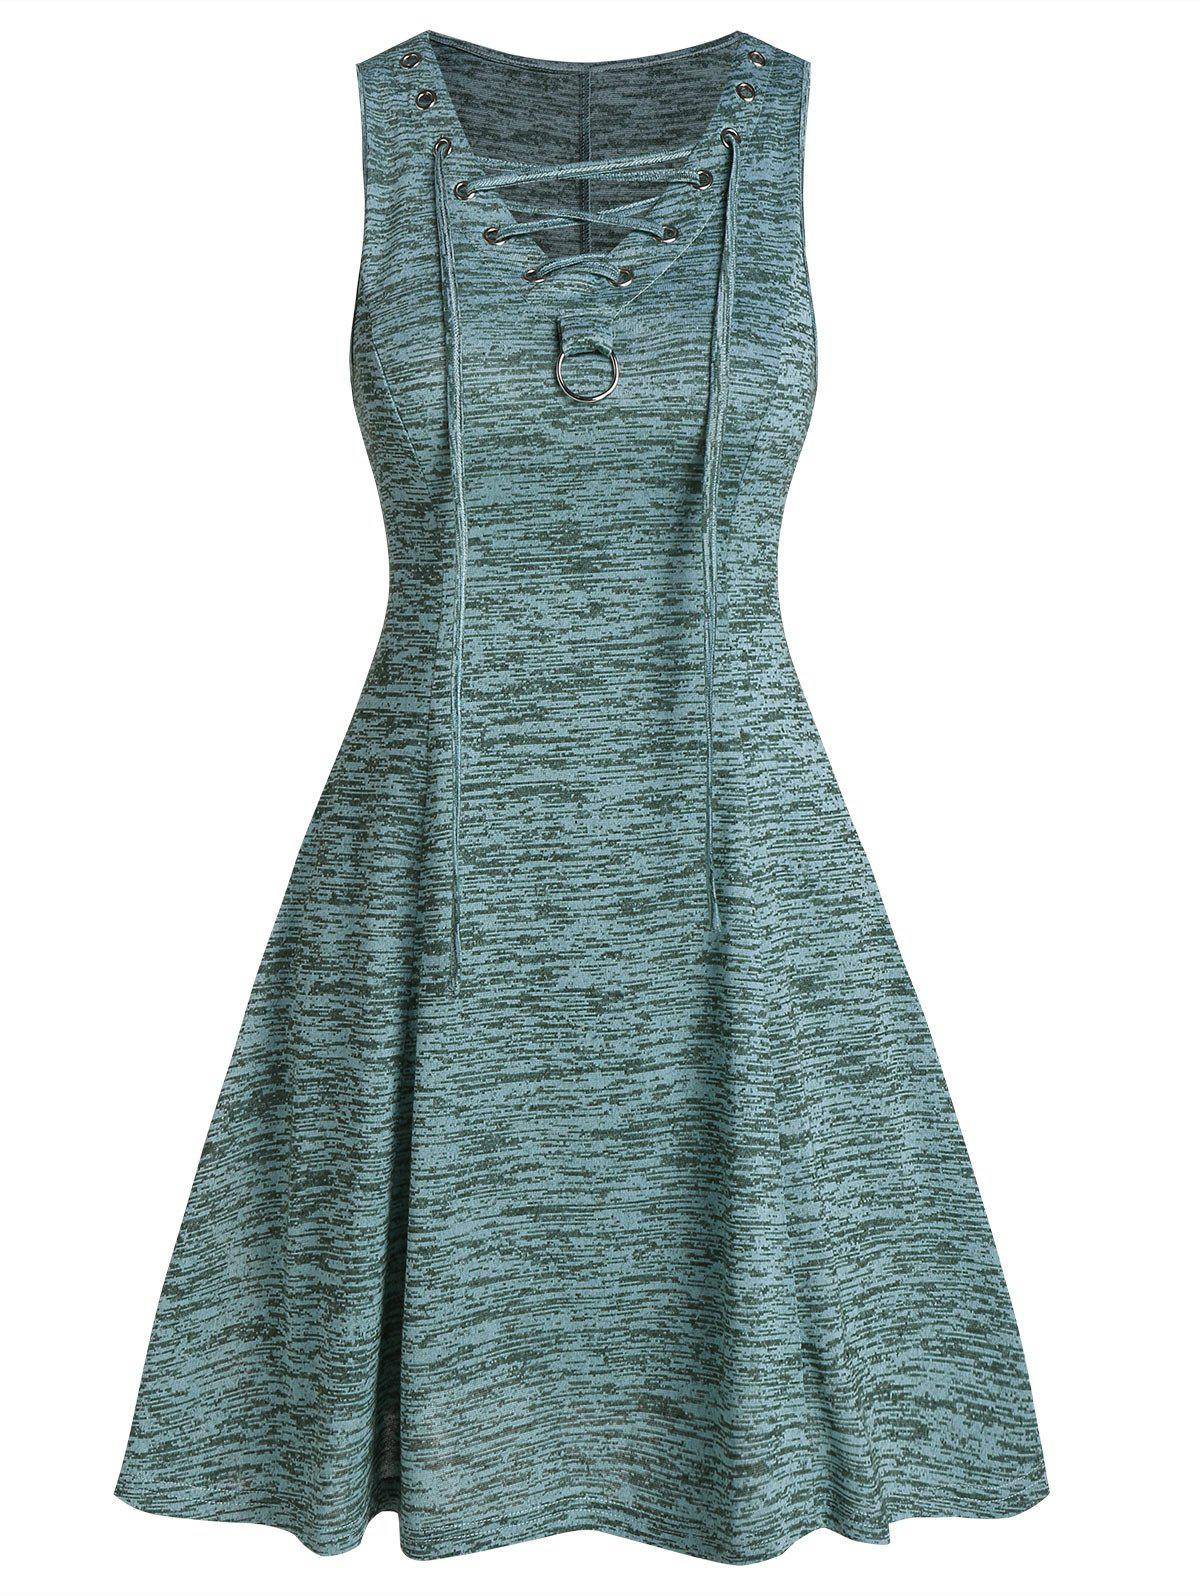 Lace Up Space Dye Fit And Flare Dress - MEDIUM TURQUOISE 3XL